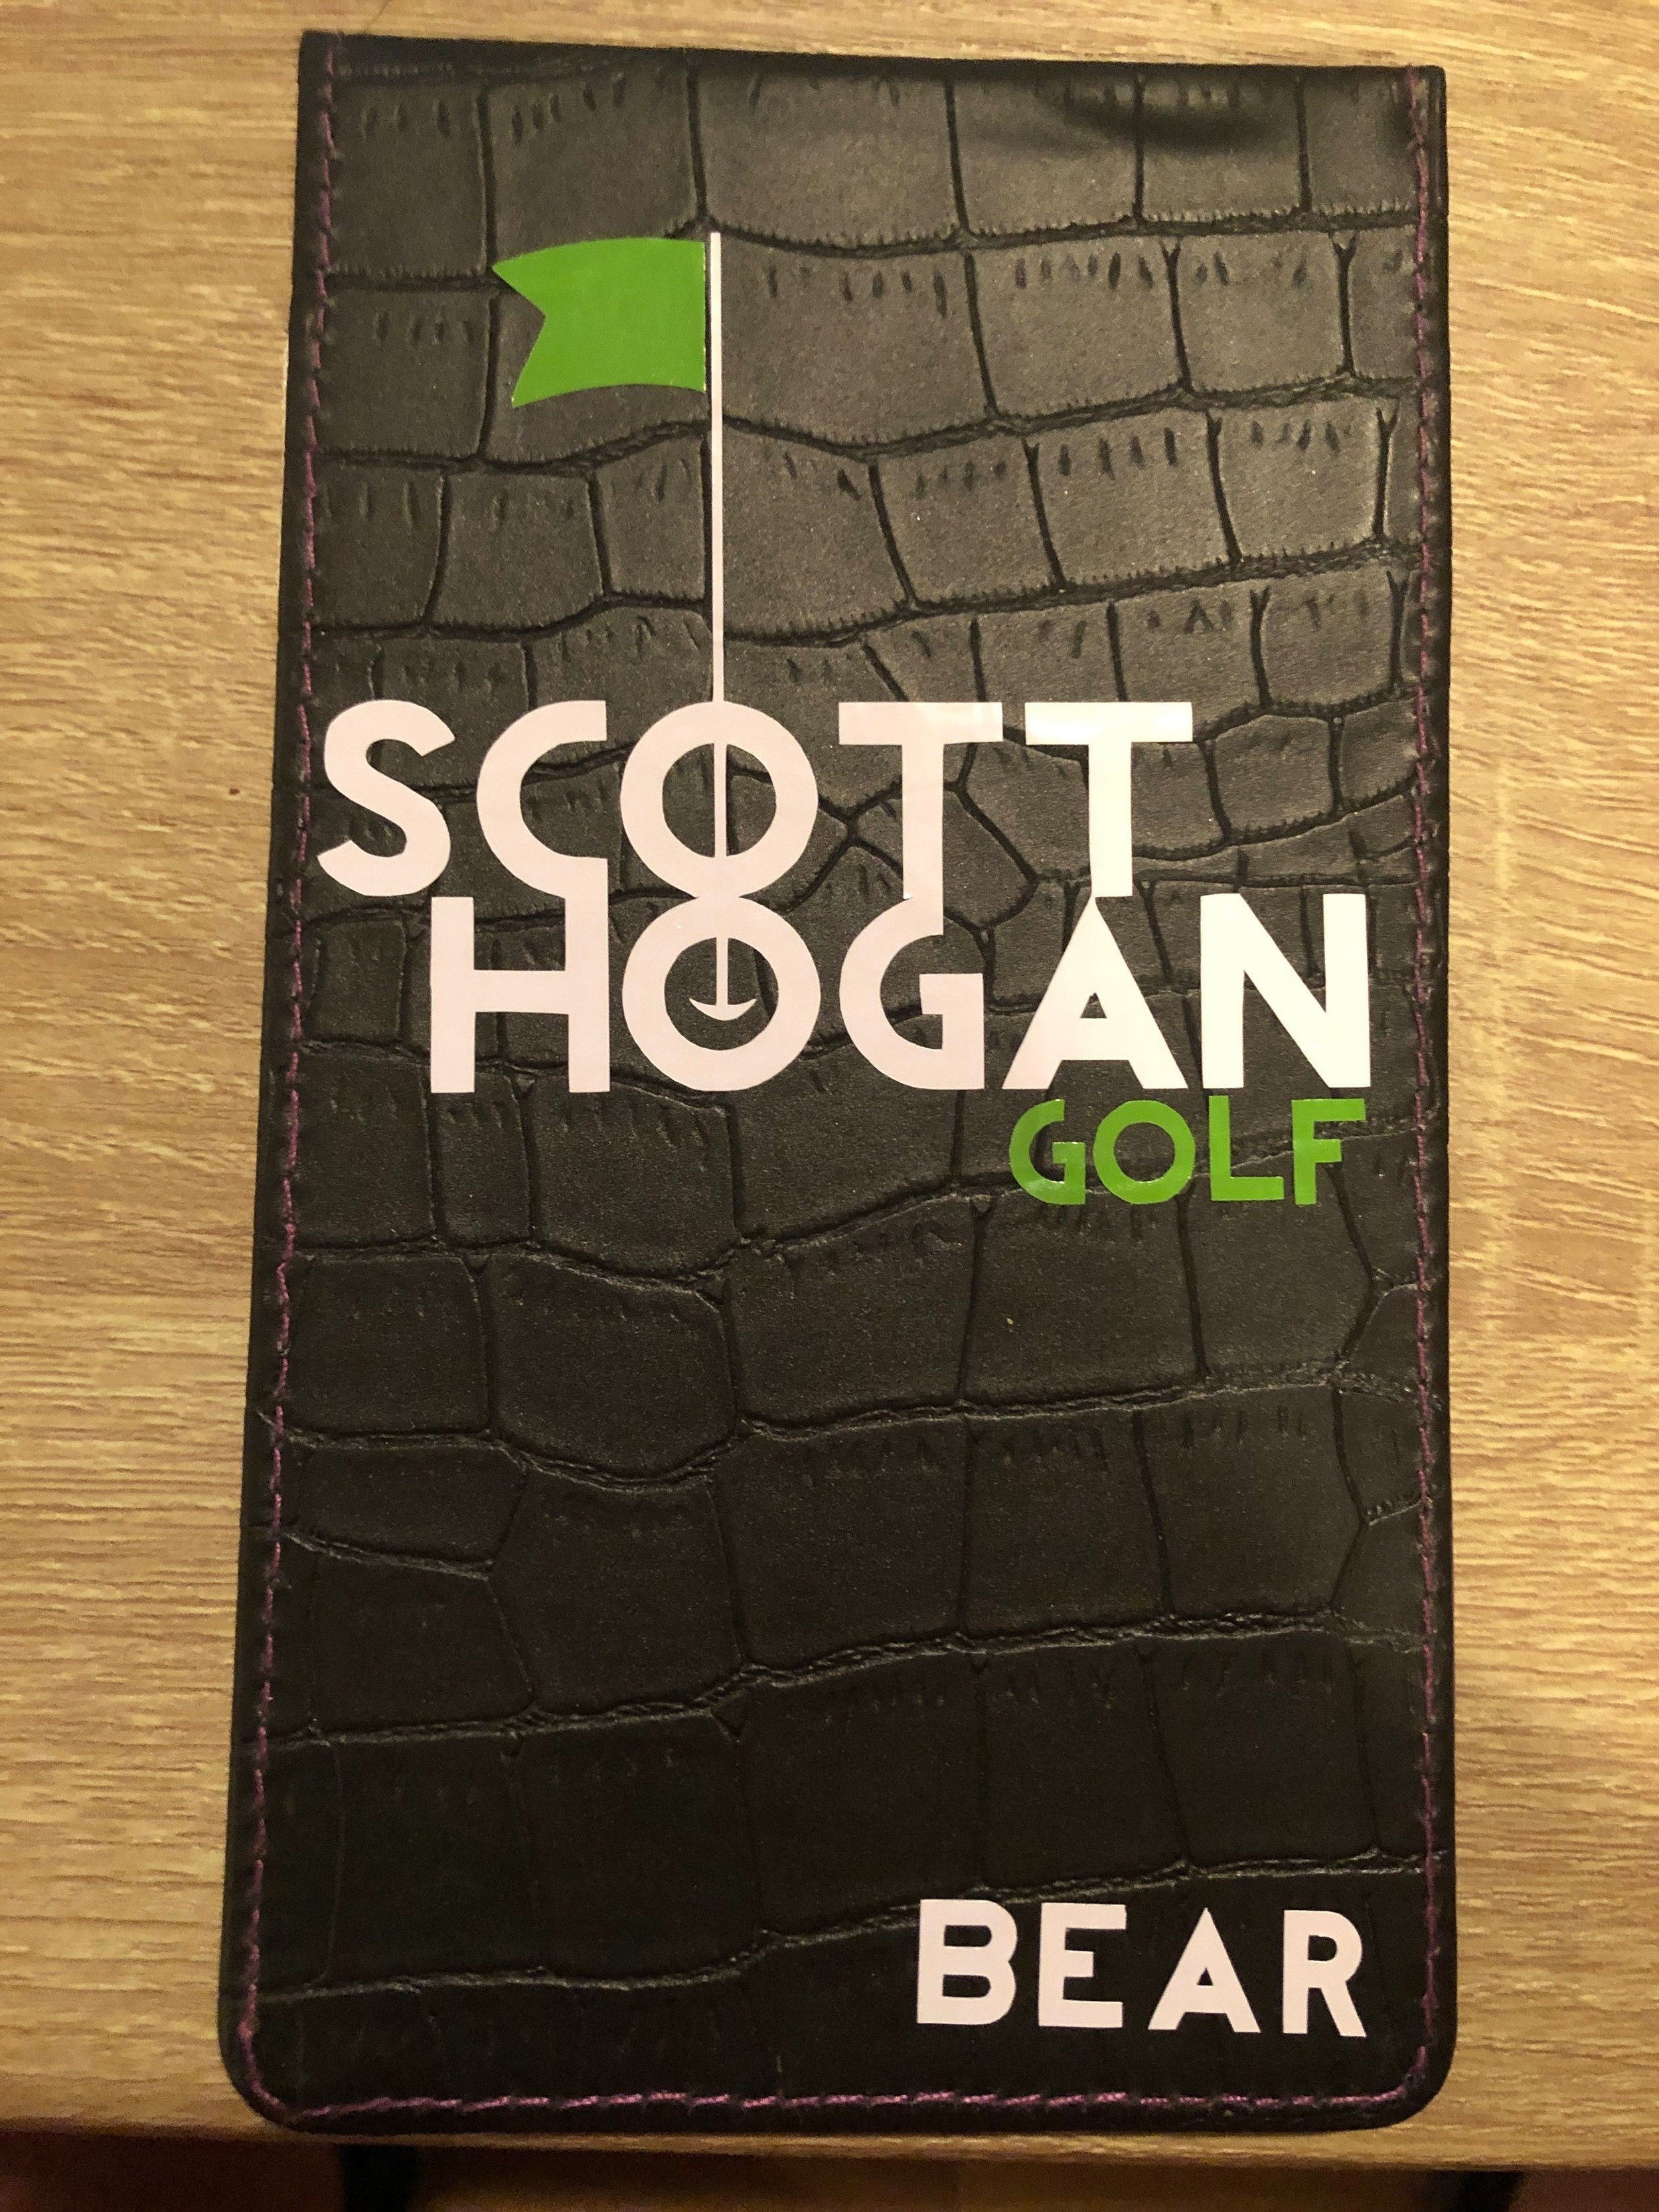 Personalized Yardage Book Cover - 25 Points